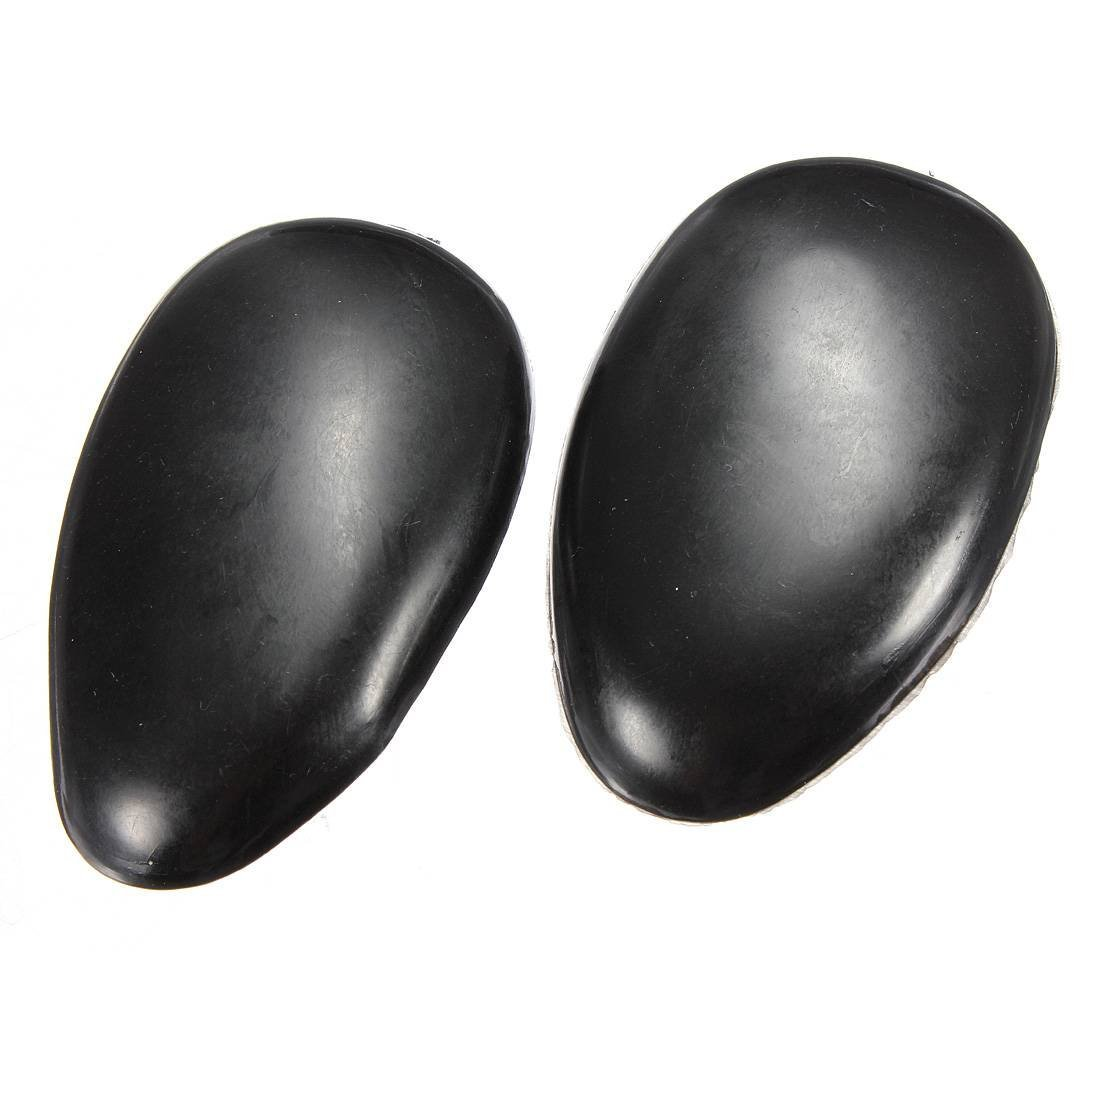 TOOGOO(R) 1 Pair Black Plastic Hair Dye Color Coloring Ear Cover Shield Protect Tint Clip Hairdressing Salon Accessories